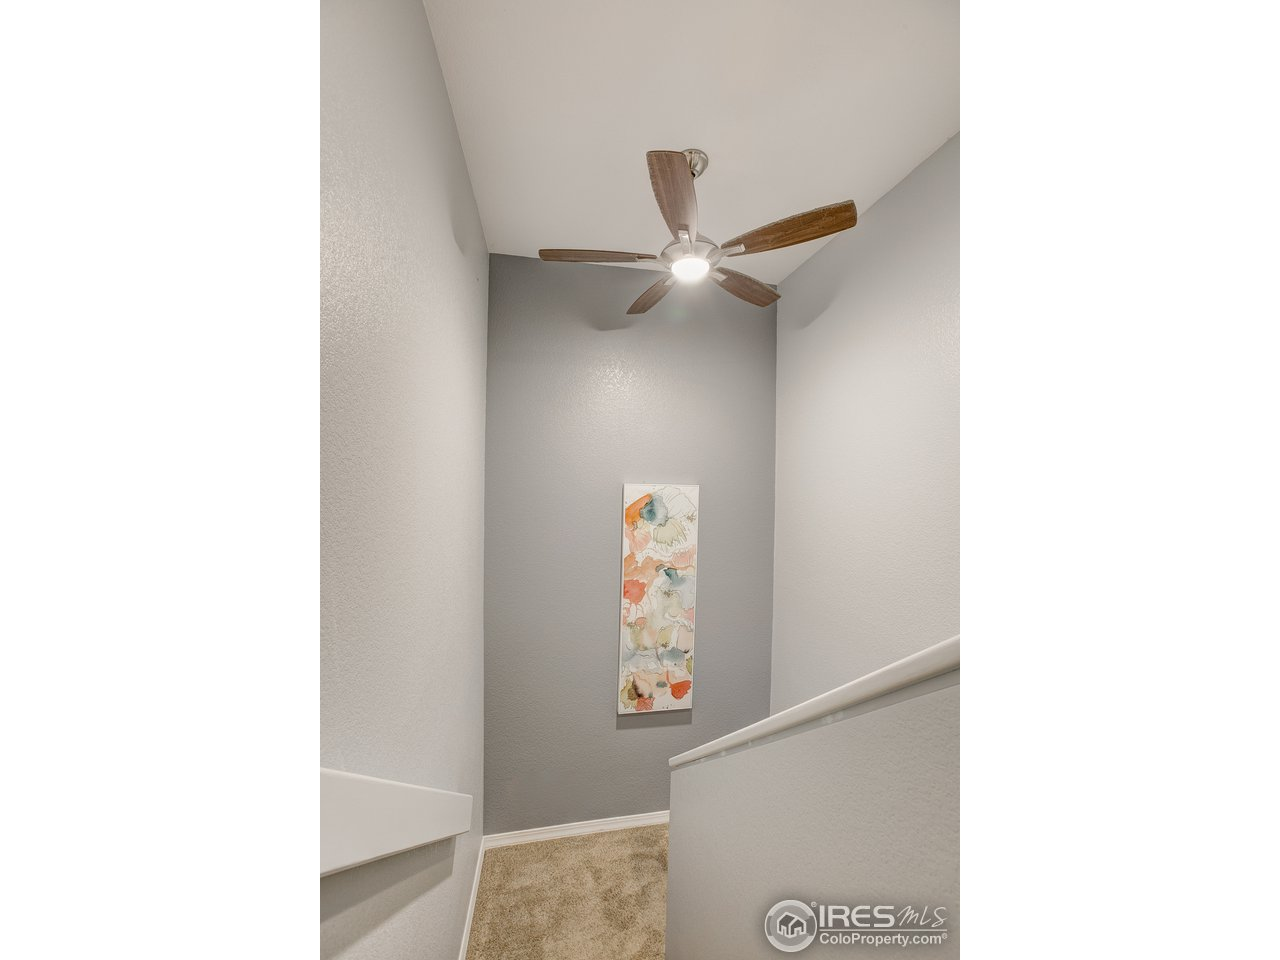 Stairway w/Ceiling Fan for added Circulation